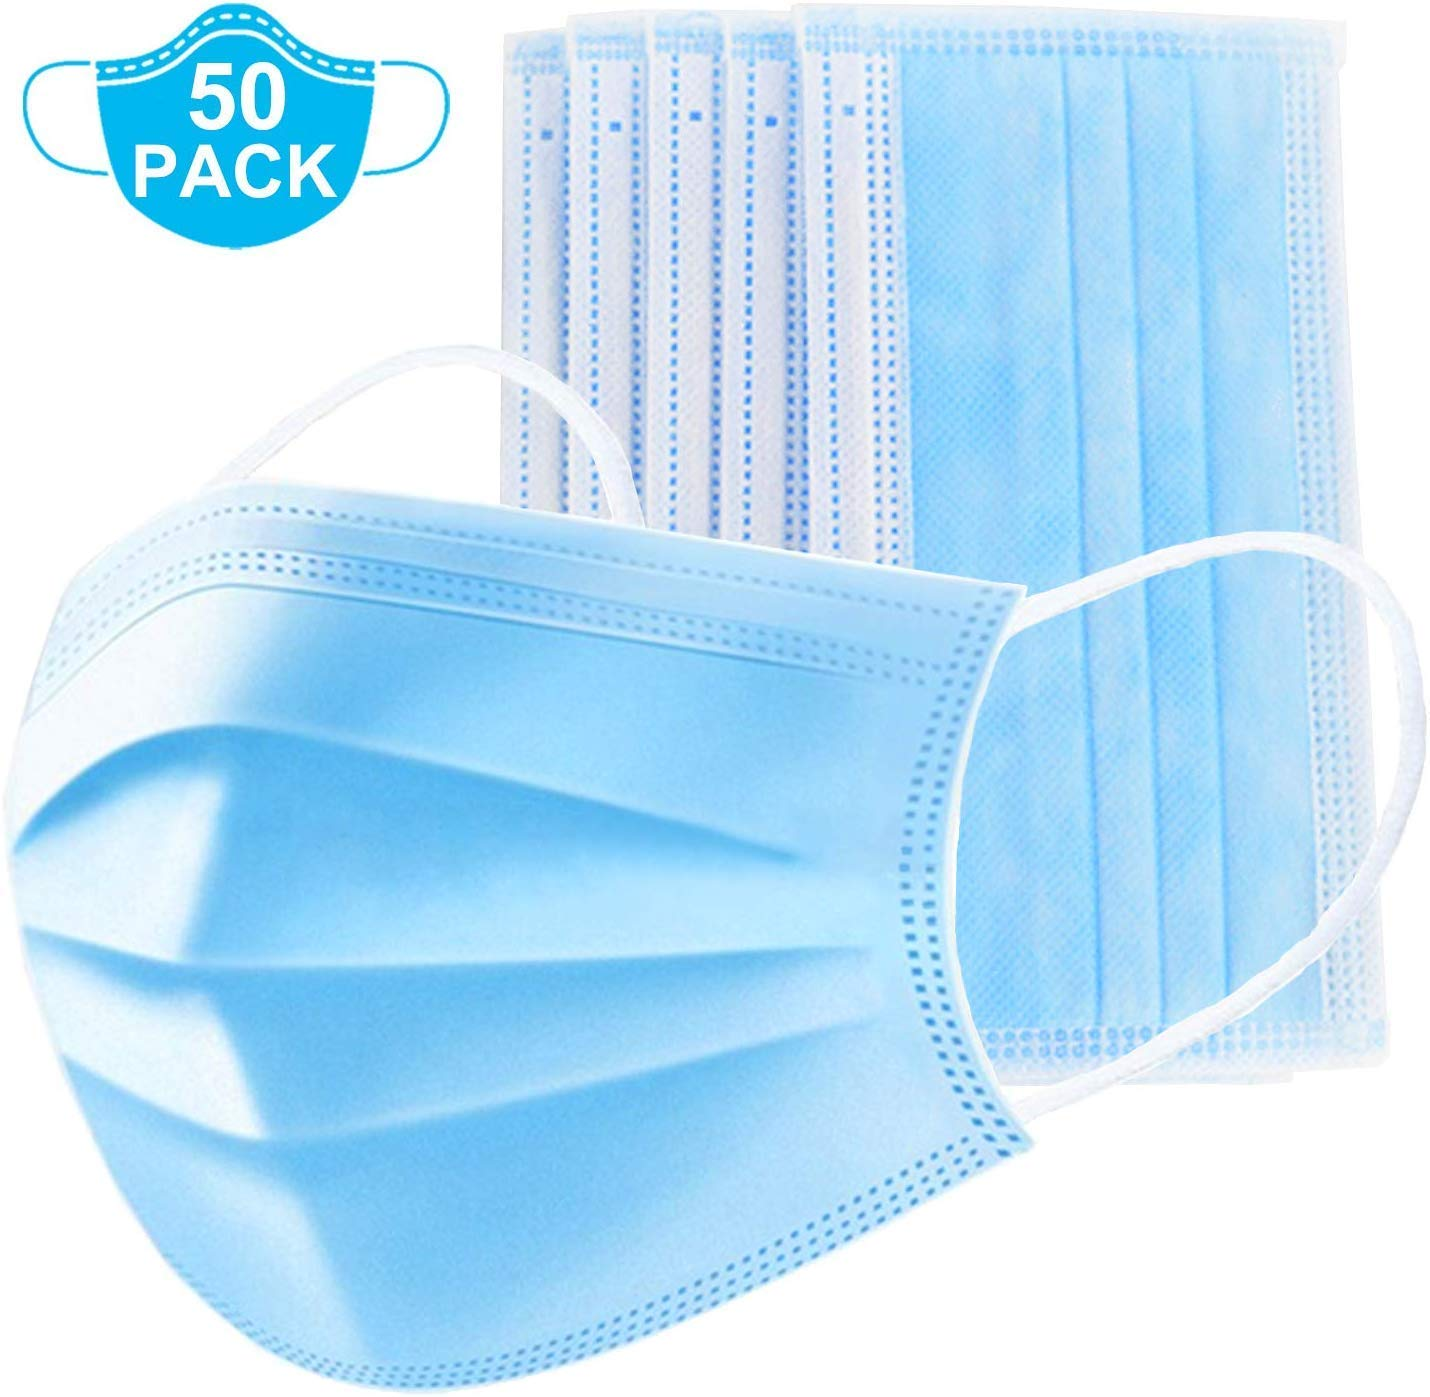 10/20/50/100 Pieces Disposable Face Mask Safety Mask Dust For  Personal Health, 3-Ply Ear Loop (10) Mouth Mask